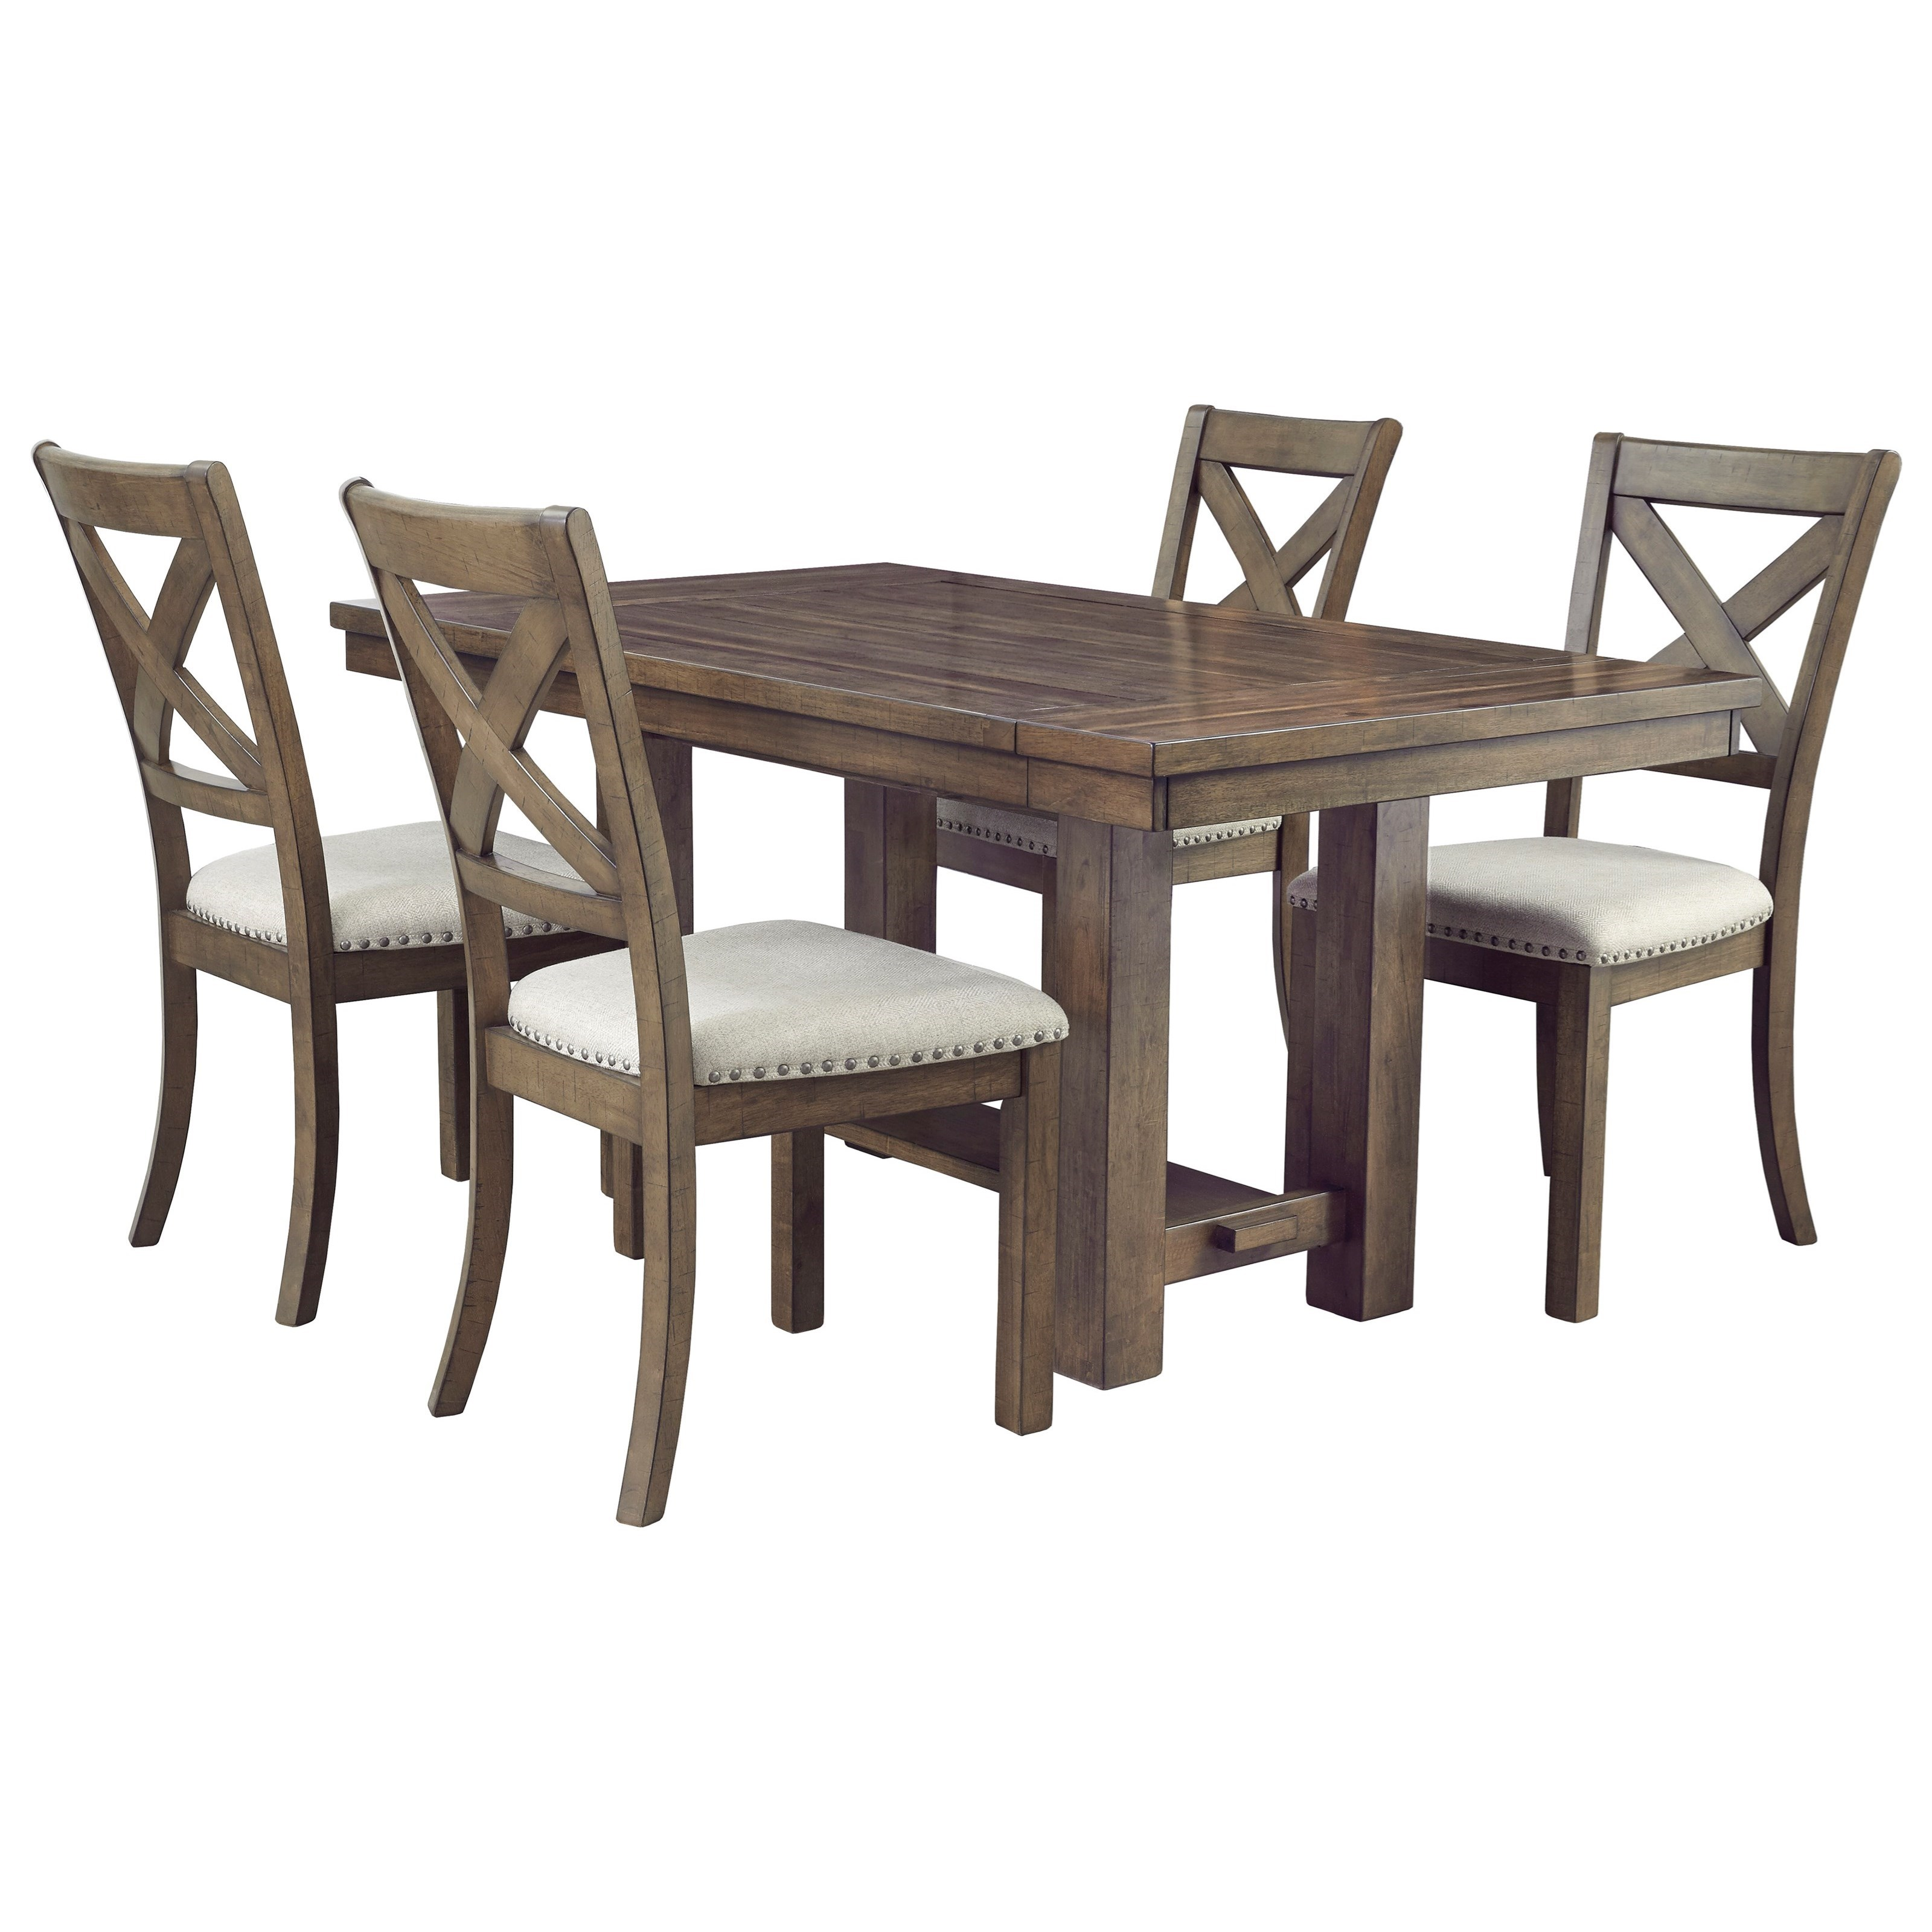 Moriville 5-Piece Table and Chair Set by Signature Design by Ashley at Northeast Factory Direct